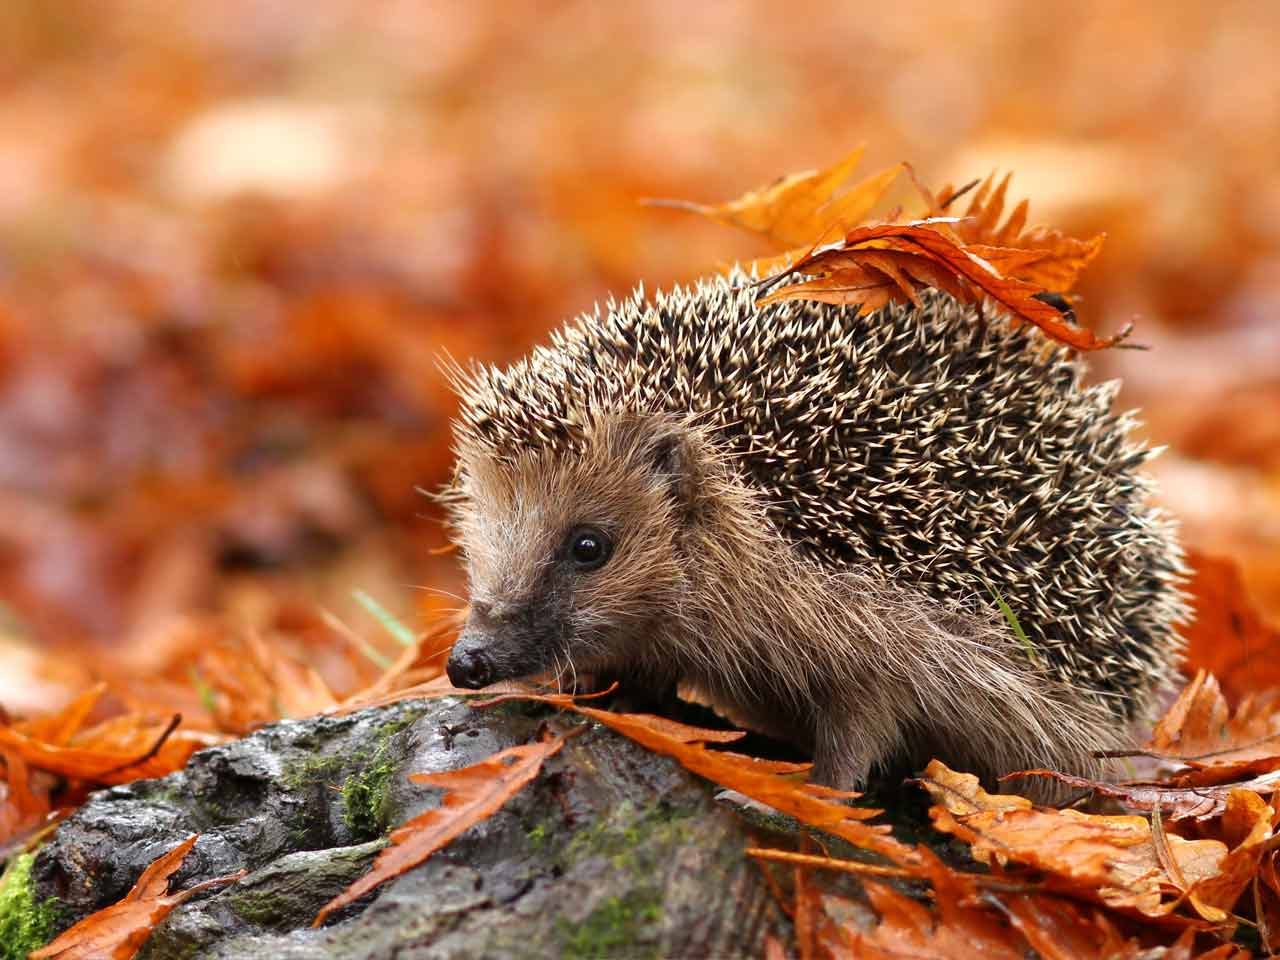 How To Help Hedgehogs Eight Essential Tips Saga